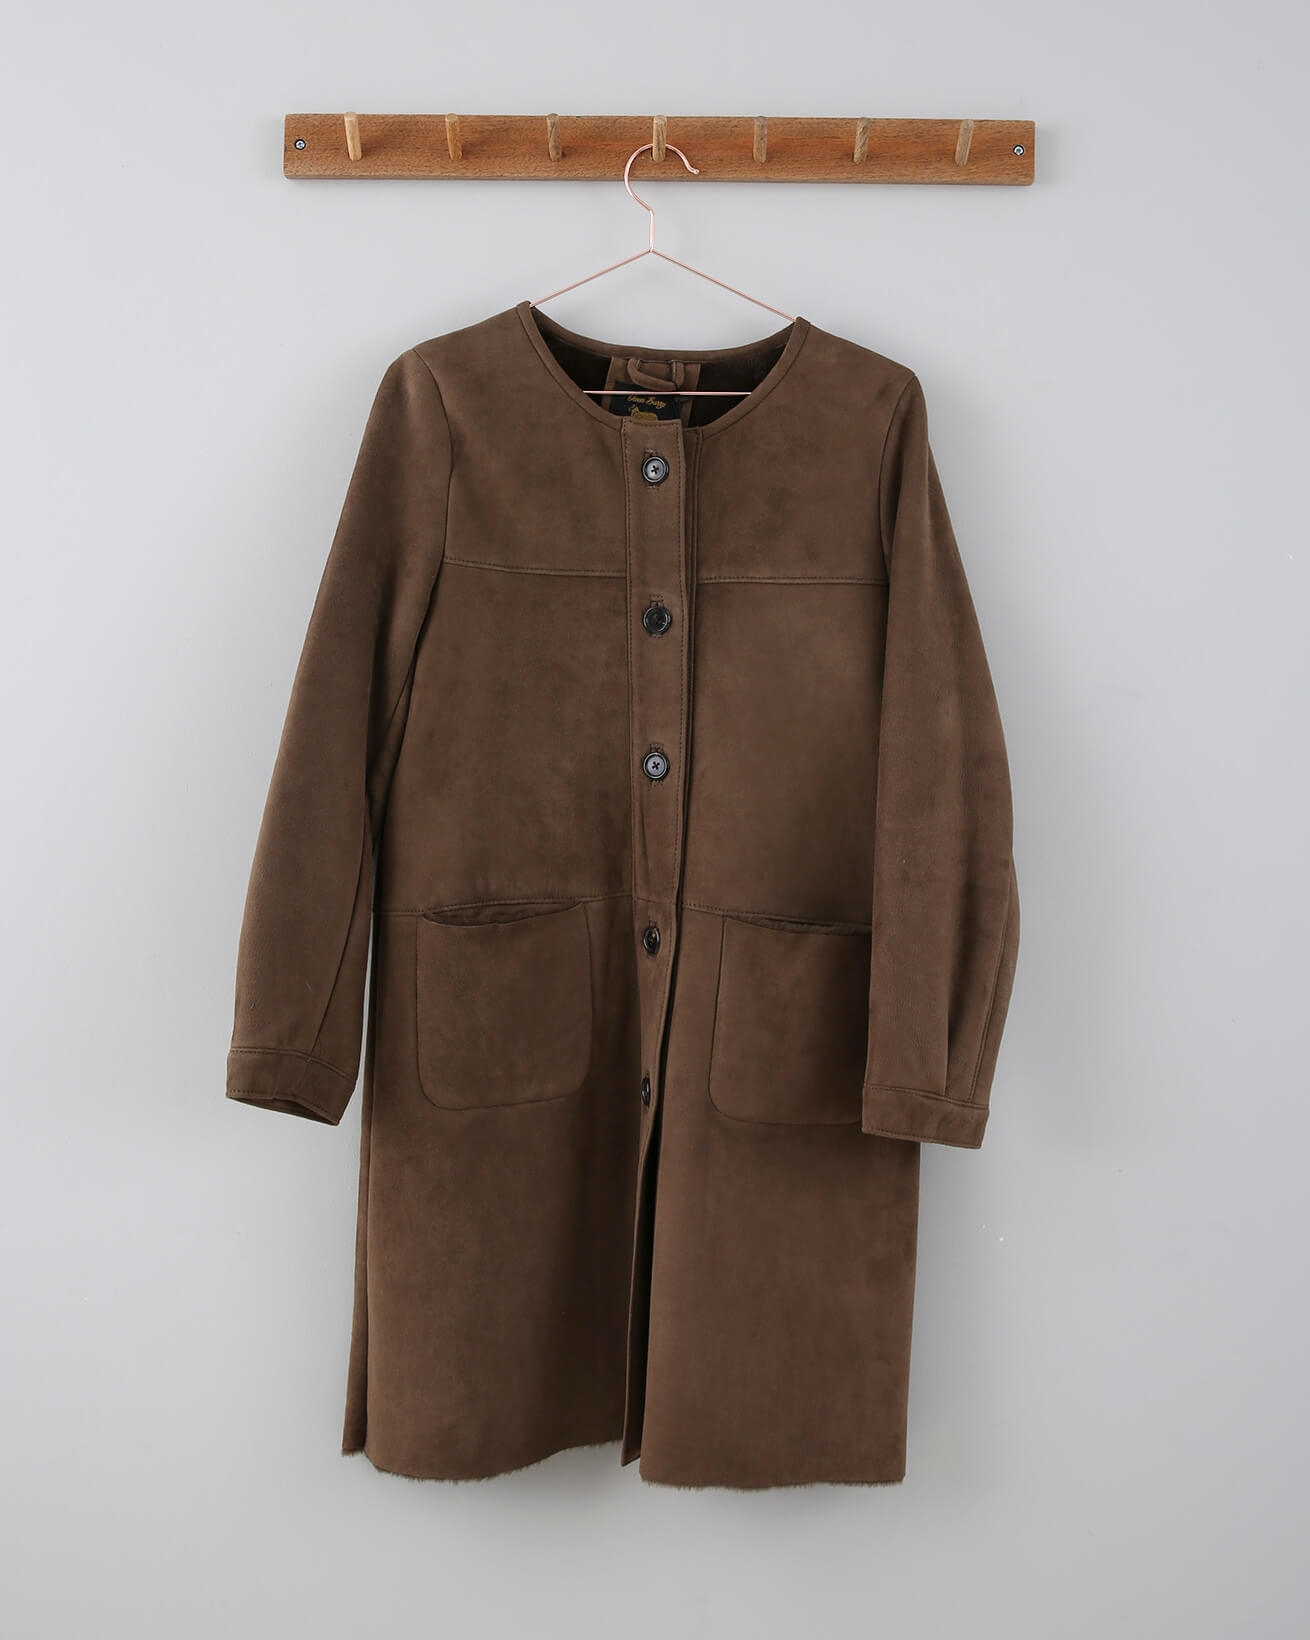 Collarless Suede Sheepskin Coat - Small - Coffee - 676